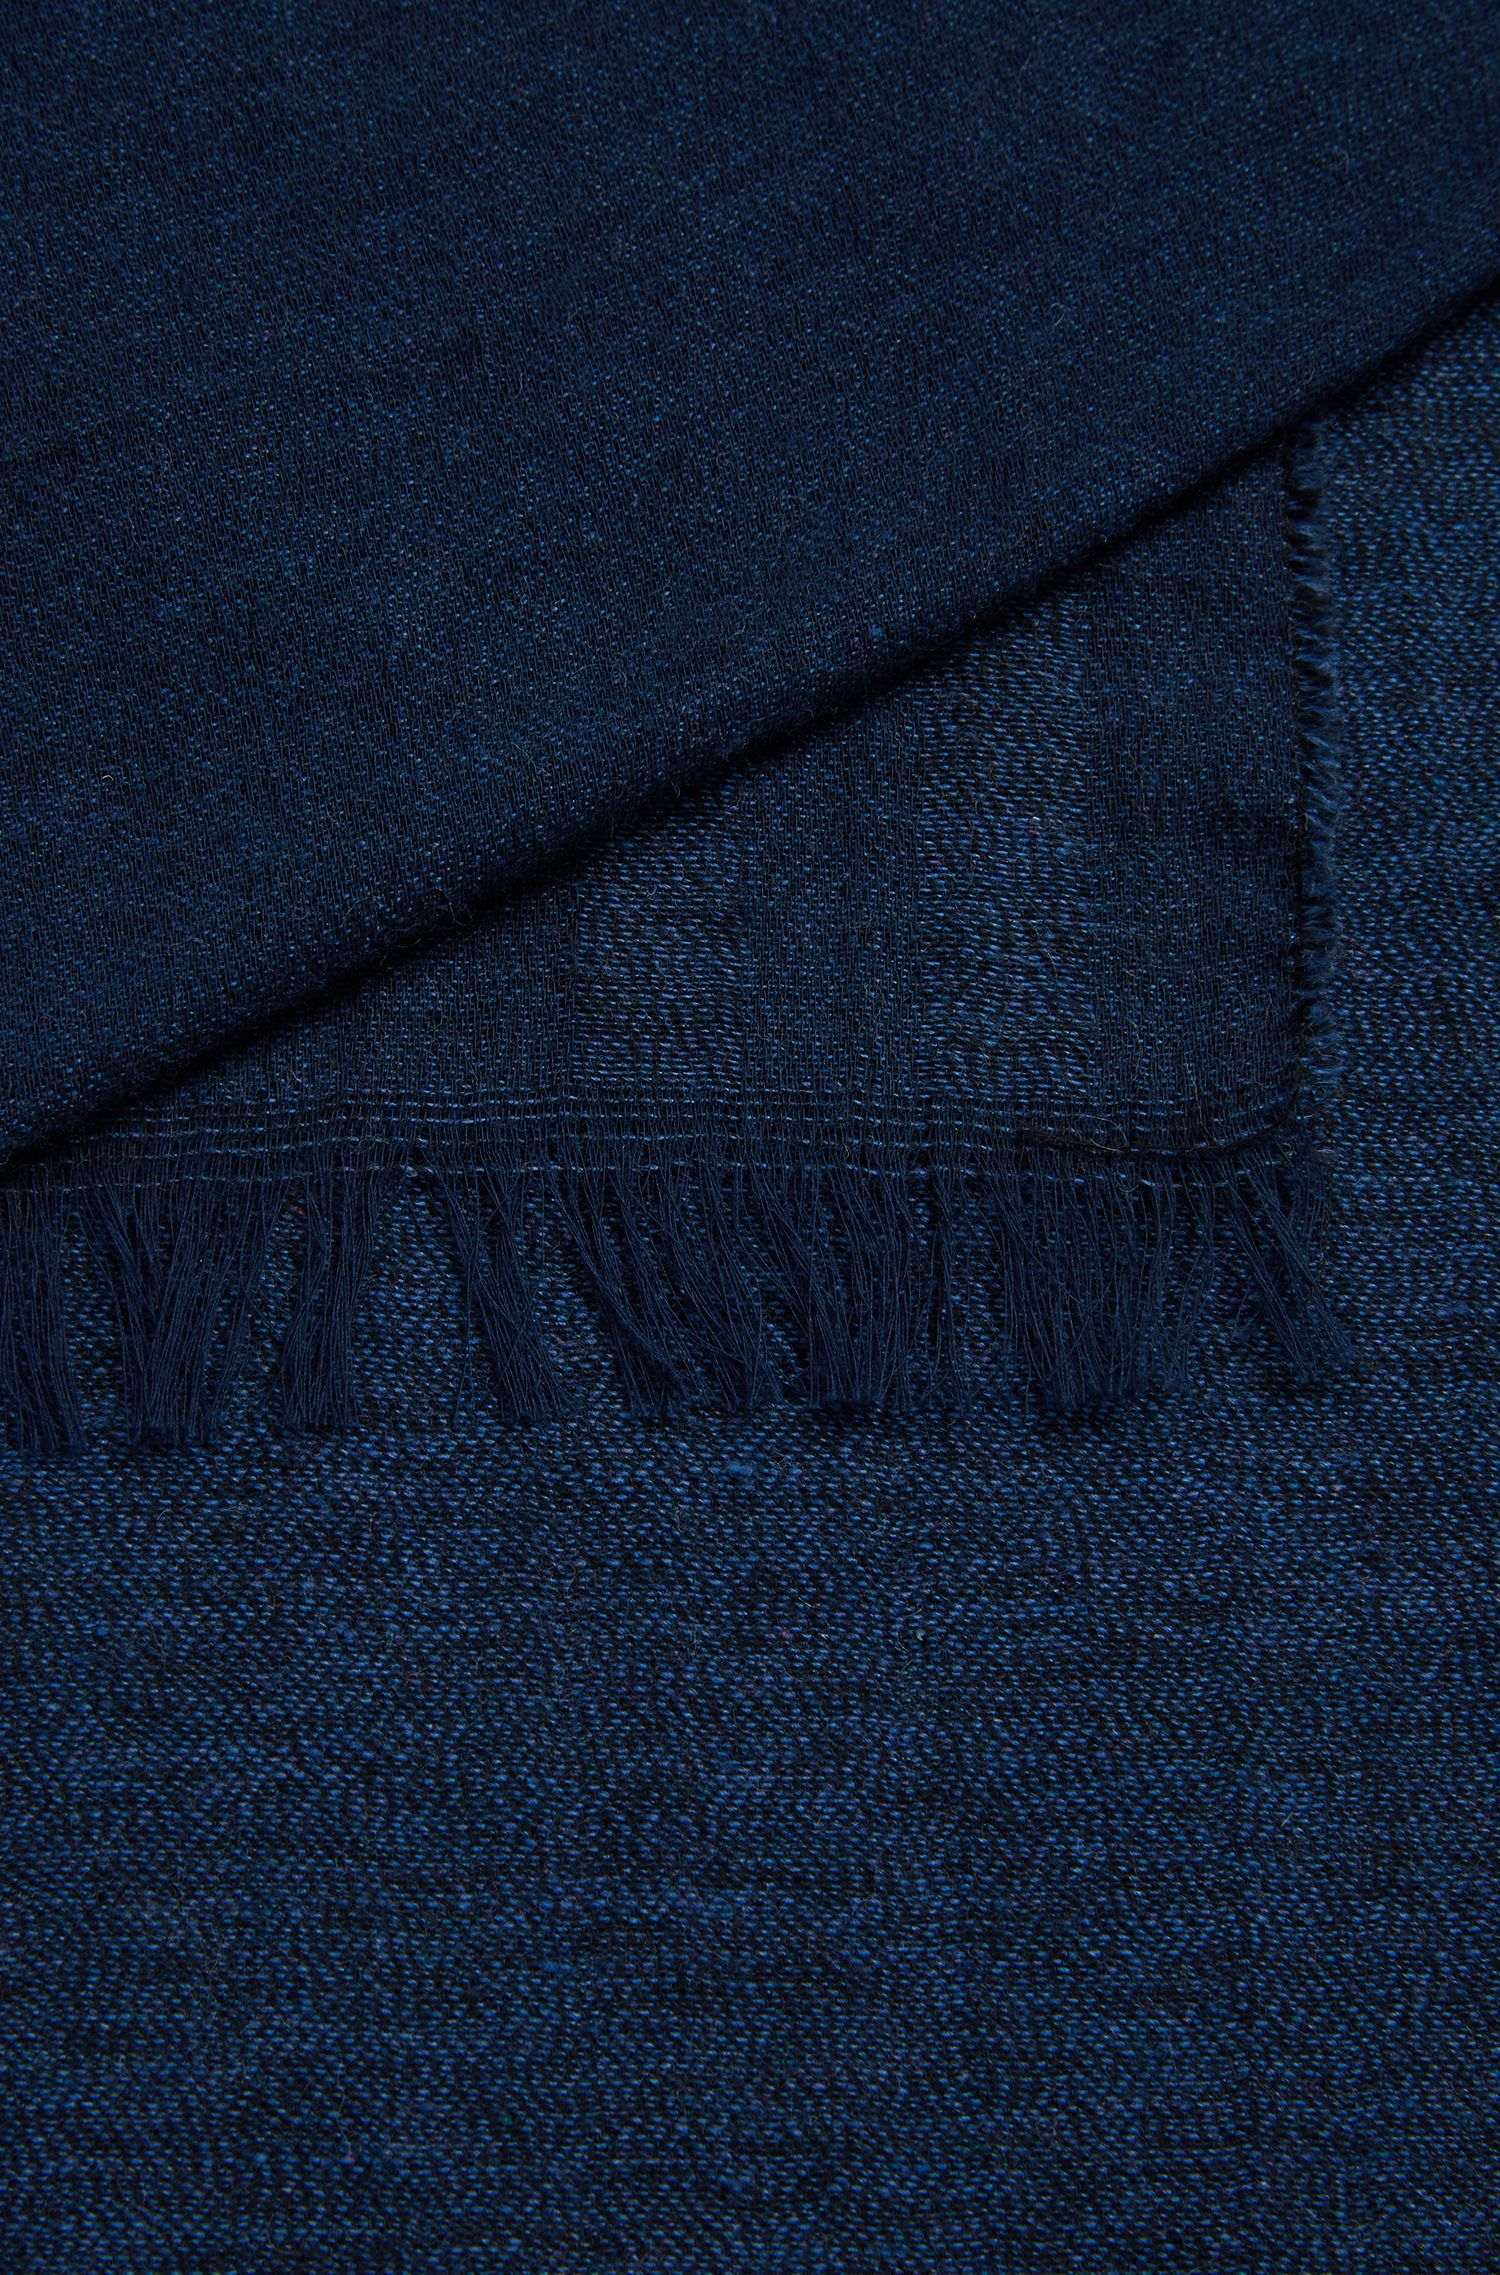 Fringed scarf in denim-inspired Italian cotton